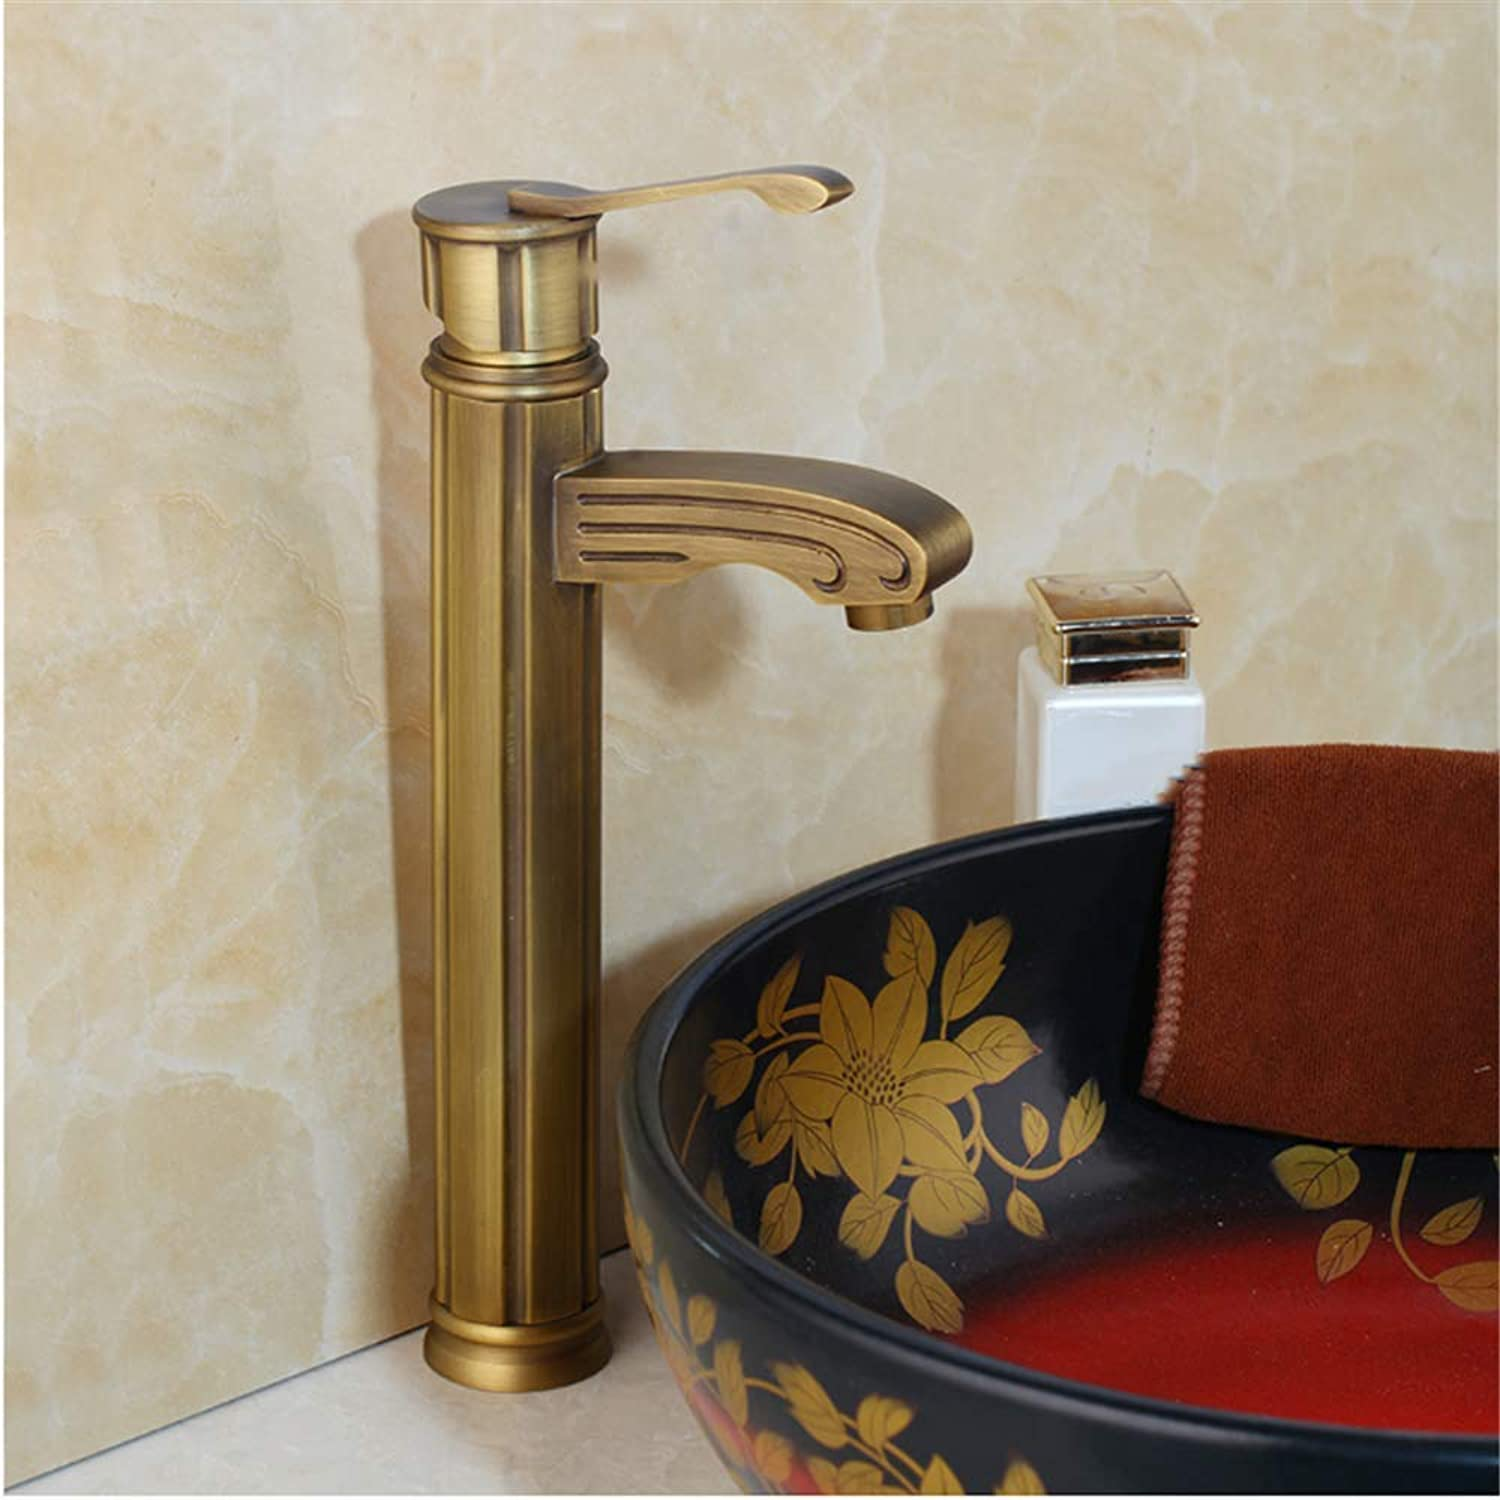 Wasserhahn küche bad Bathroom Basin Sink Faucets Antique Brass Deck Mounted Single Handle hole Mixer Tap Single Handle